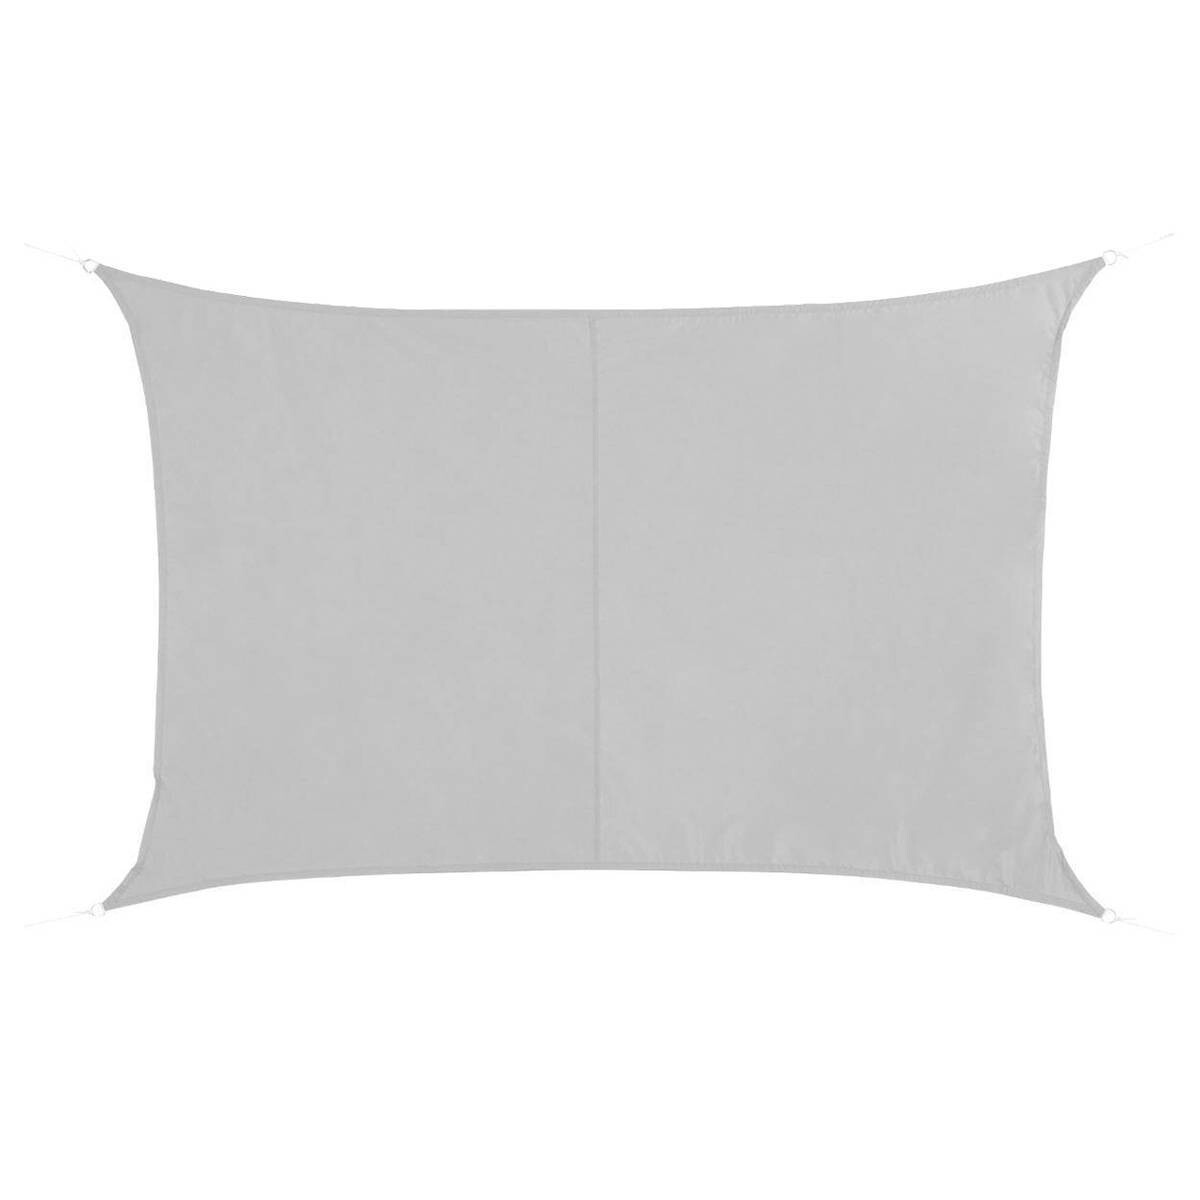 Voile d'ombrage rectangulaire Curacao 3X2m